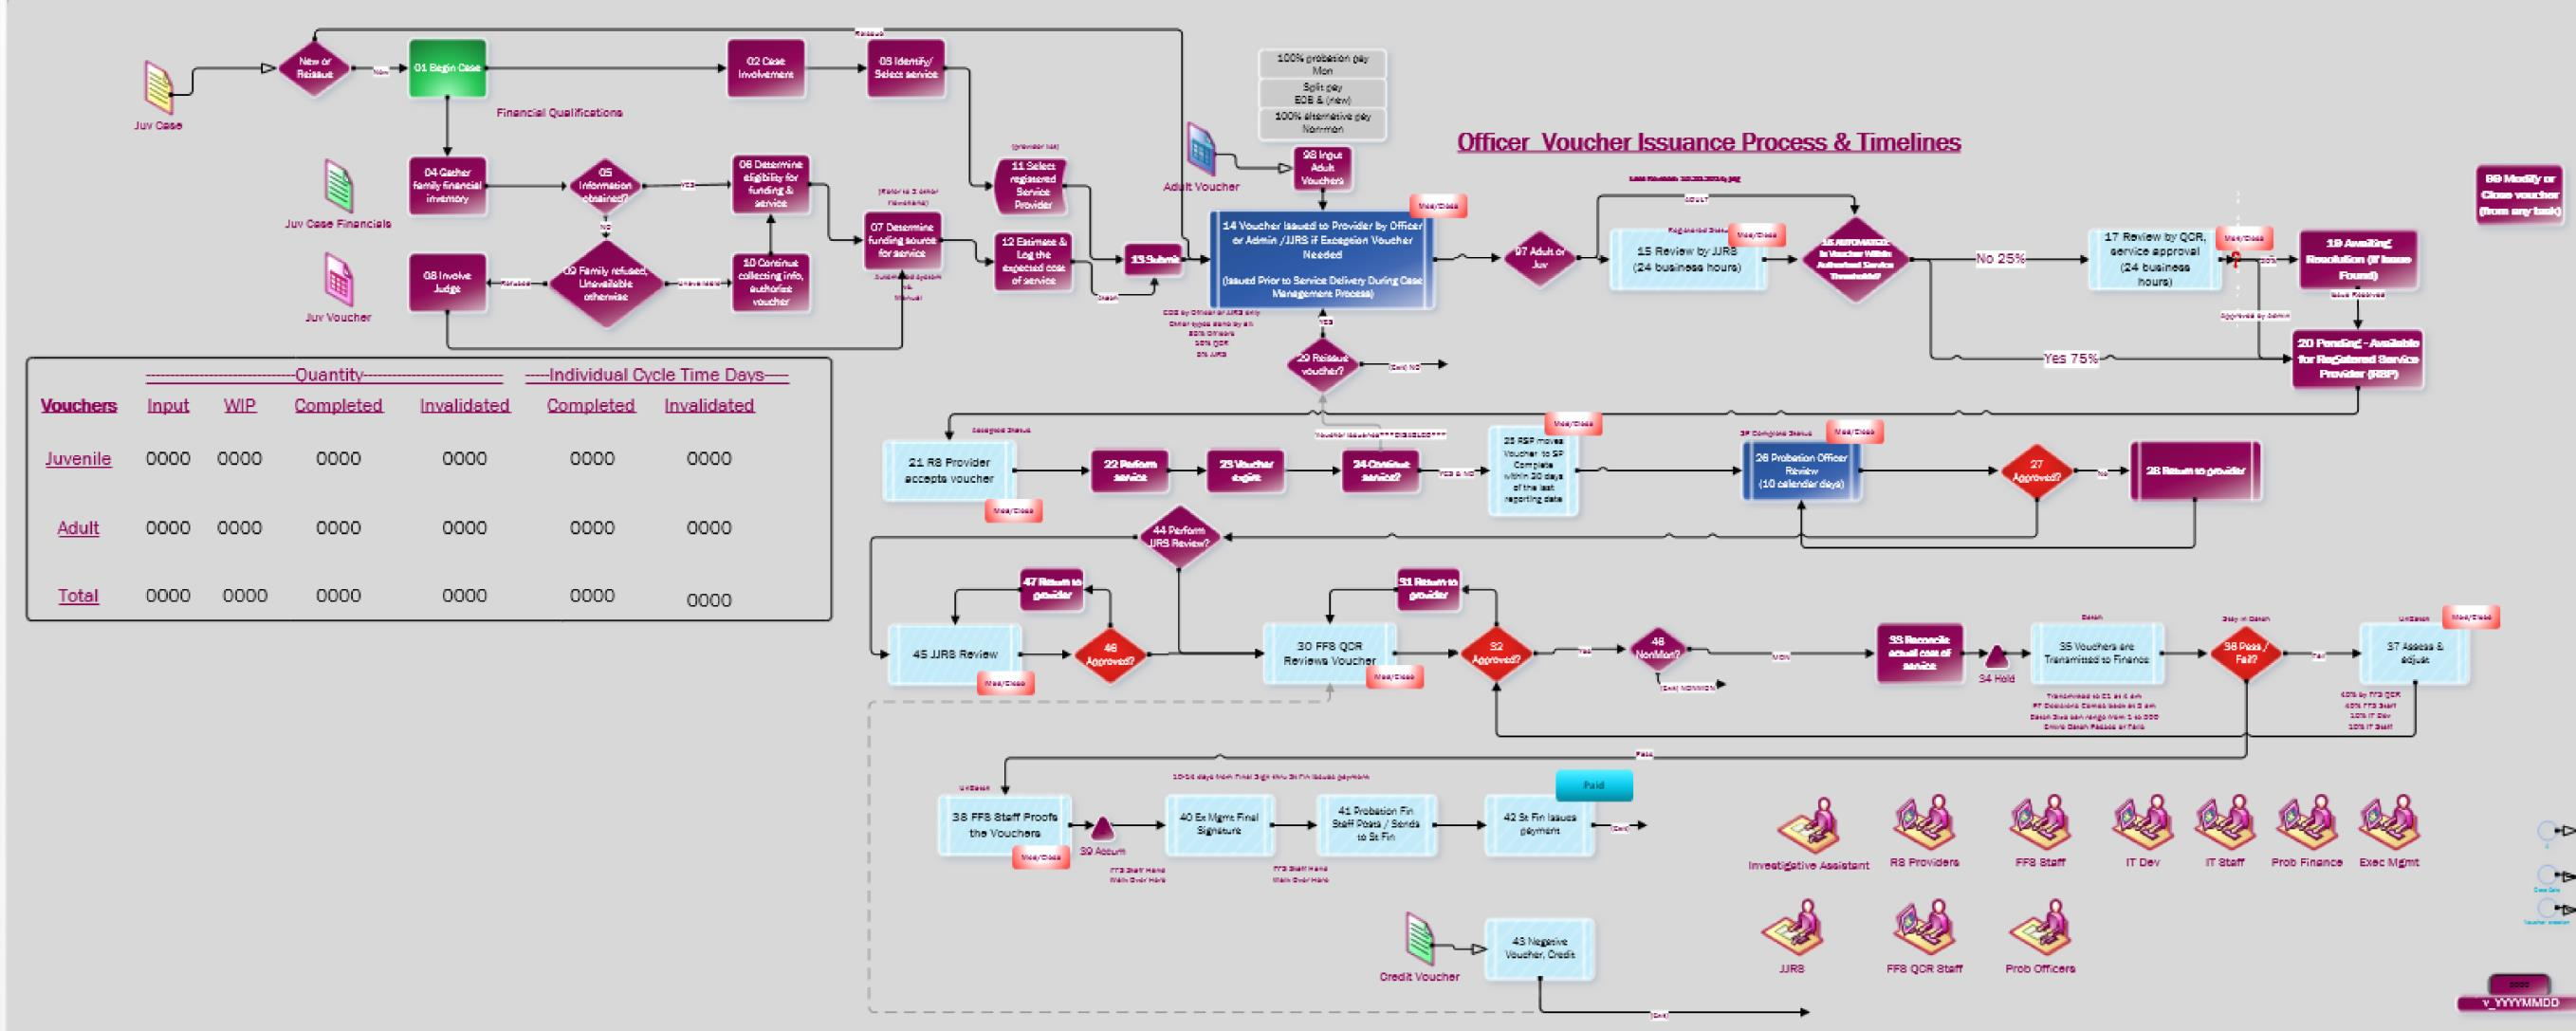 Probation Voucher Process_Image_5